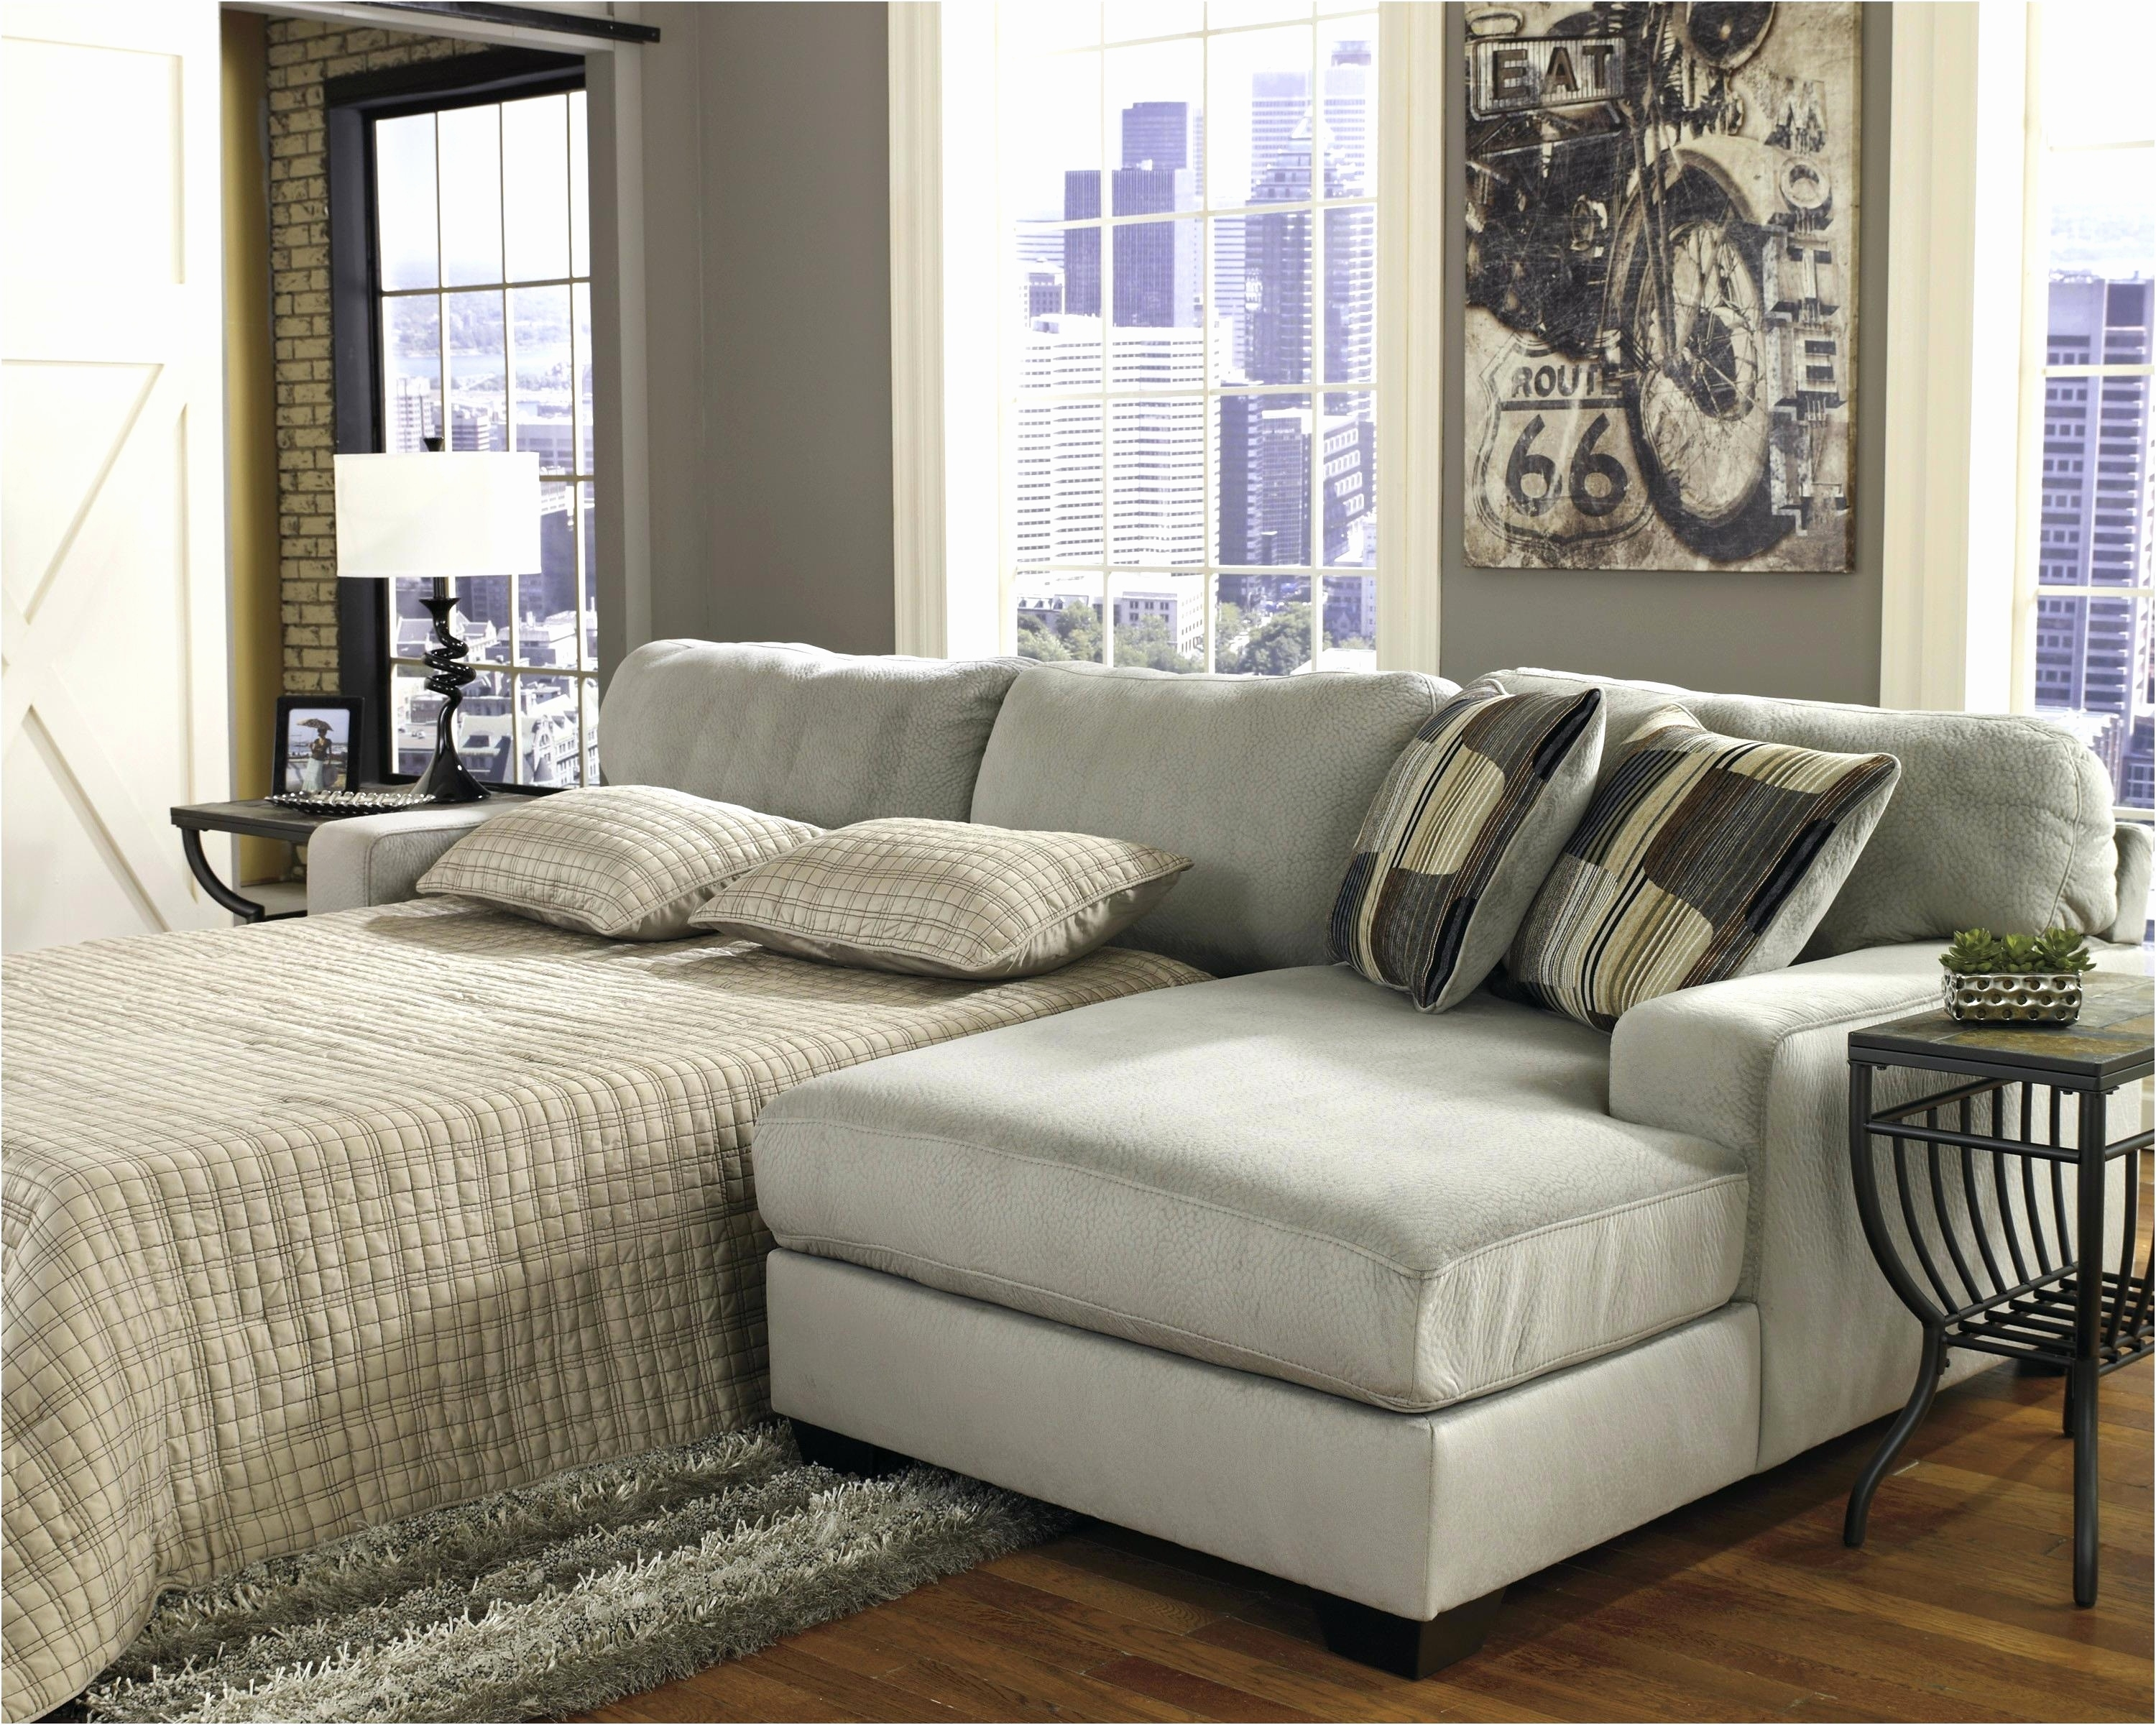 Luxury Oversized Comfy Sectional 2018 – Couches Ideas Regarding Comfy Sectional Sofas (Image 5 of 10)